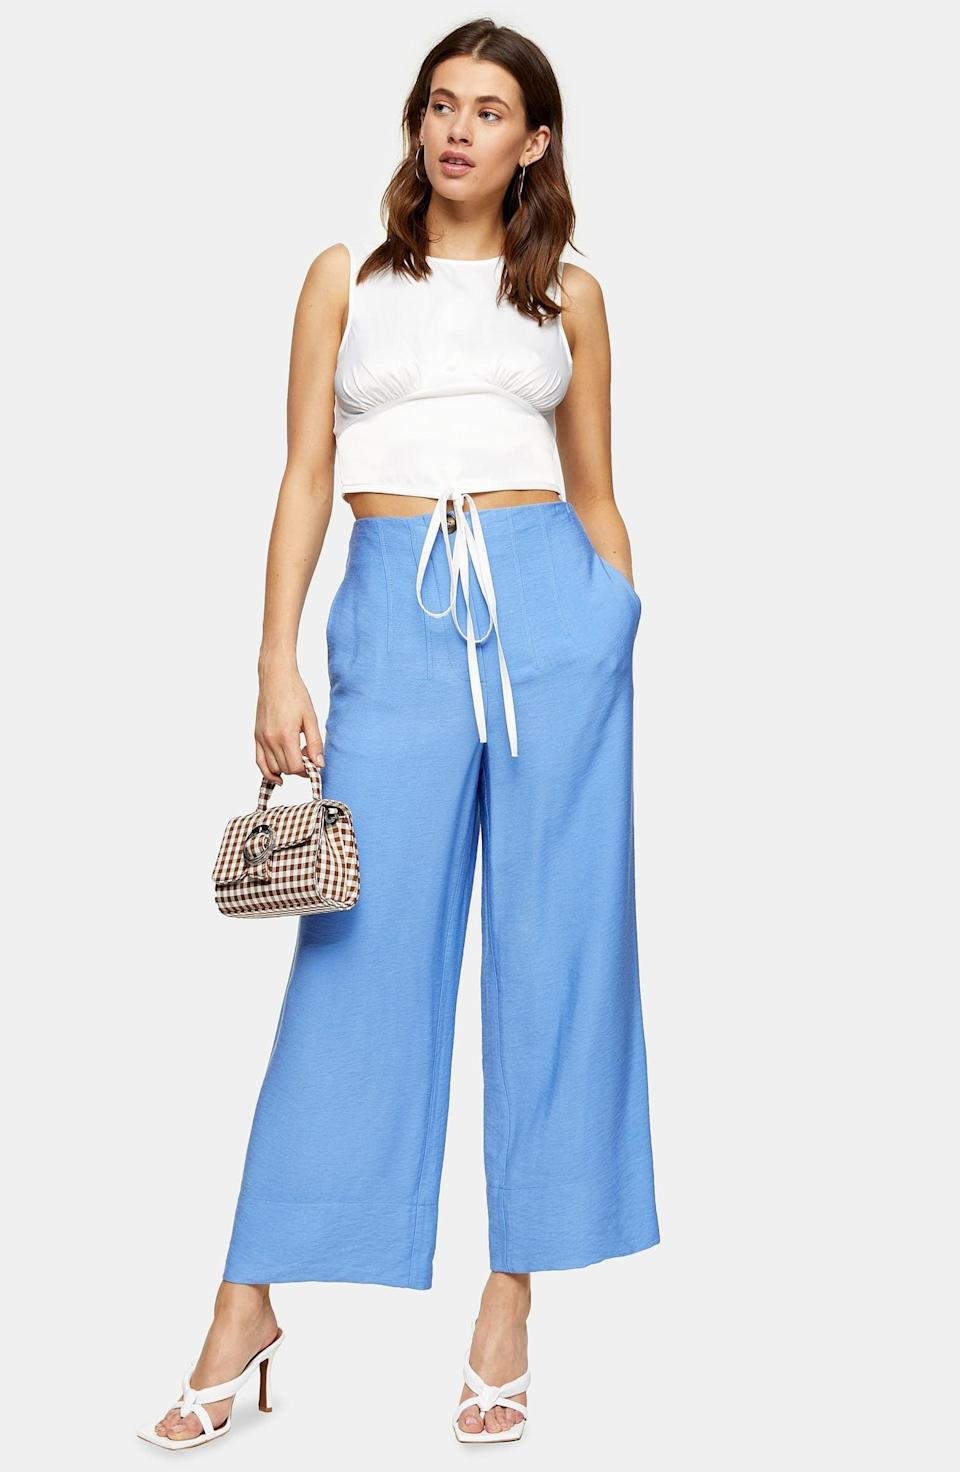 "<p>These comfy <a href=""https://www.popsugar.com/buy/Topshop-Aida-Stitch-Detail-Wide-Leg-Trousers-573074?p_name=Topshop%20Aida%20Stitch%20Detail%20Wide%20Leg%20Trousers&retailer=shop.nordstrom.com&pid=573074&price=55&evar1=fab%3Aus&evar9=47085485&evar98=https%3A%2F%2Fwww.popsugar.com%2Ffashion%2Fphoto-gallery%2F47085485%2Fimage%2F47462830%2FTopshop-Aida-Stitch-Detail-Wide-Leg-Trousers&list1=shopping%2Cpants%2Cworkwear%2Cfashion%20shopping&prop13=mobile&pdata=1"" class=""link rapid-noclick-resp"" rel=""nofollow noopener"" target=""_blank"" data-ylk=""slk:Topshop Aida Stitch Detail Wide Leg Trousers"">Topshop Aida Stitch Detail Wide Leg Trousers</a> ($55) are easy to mix and match with anything.</p>"